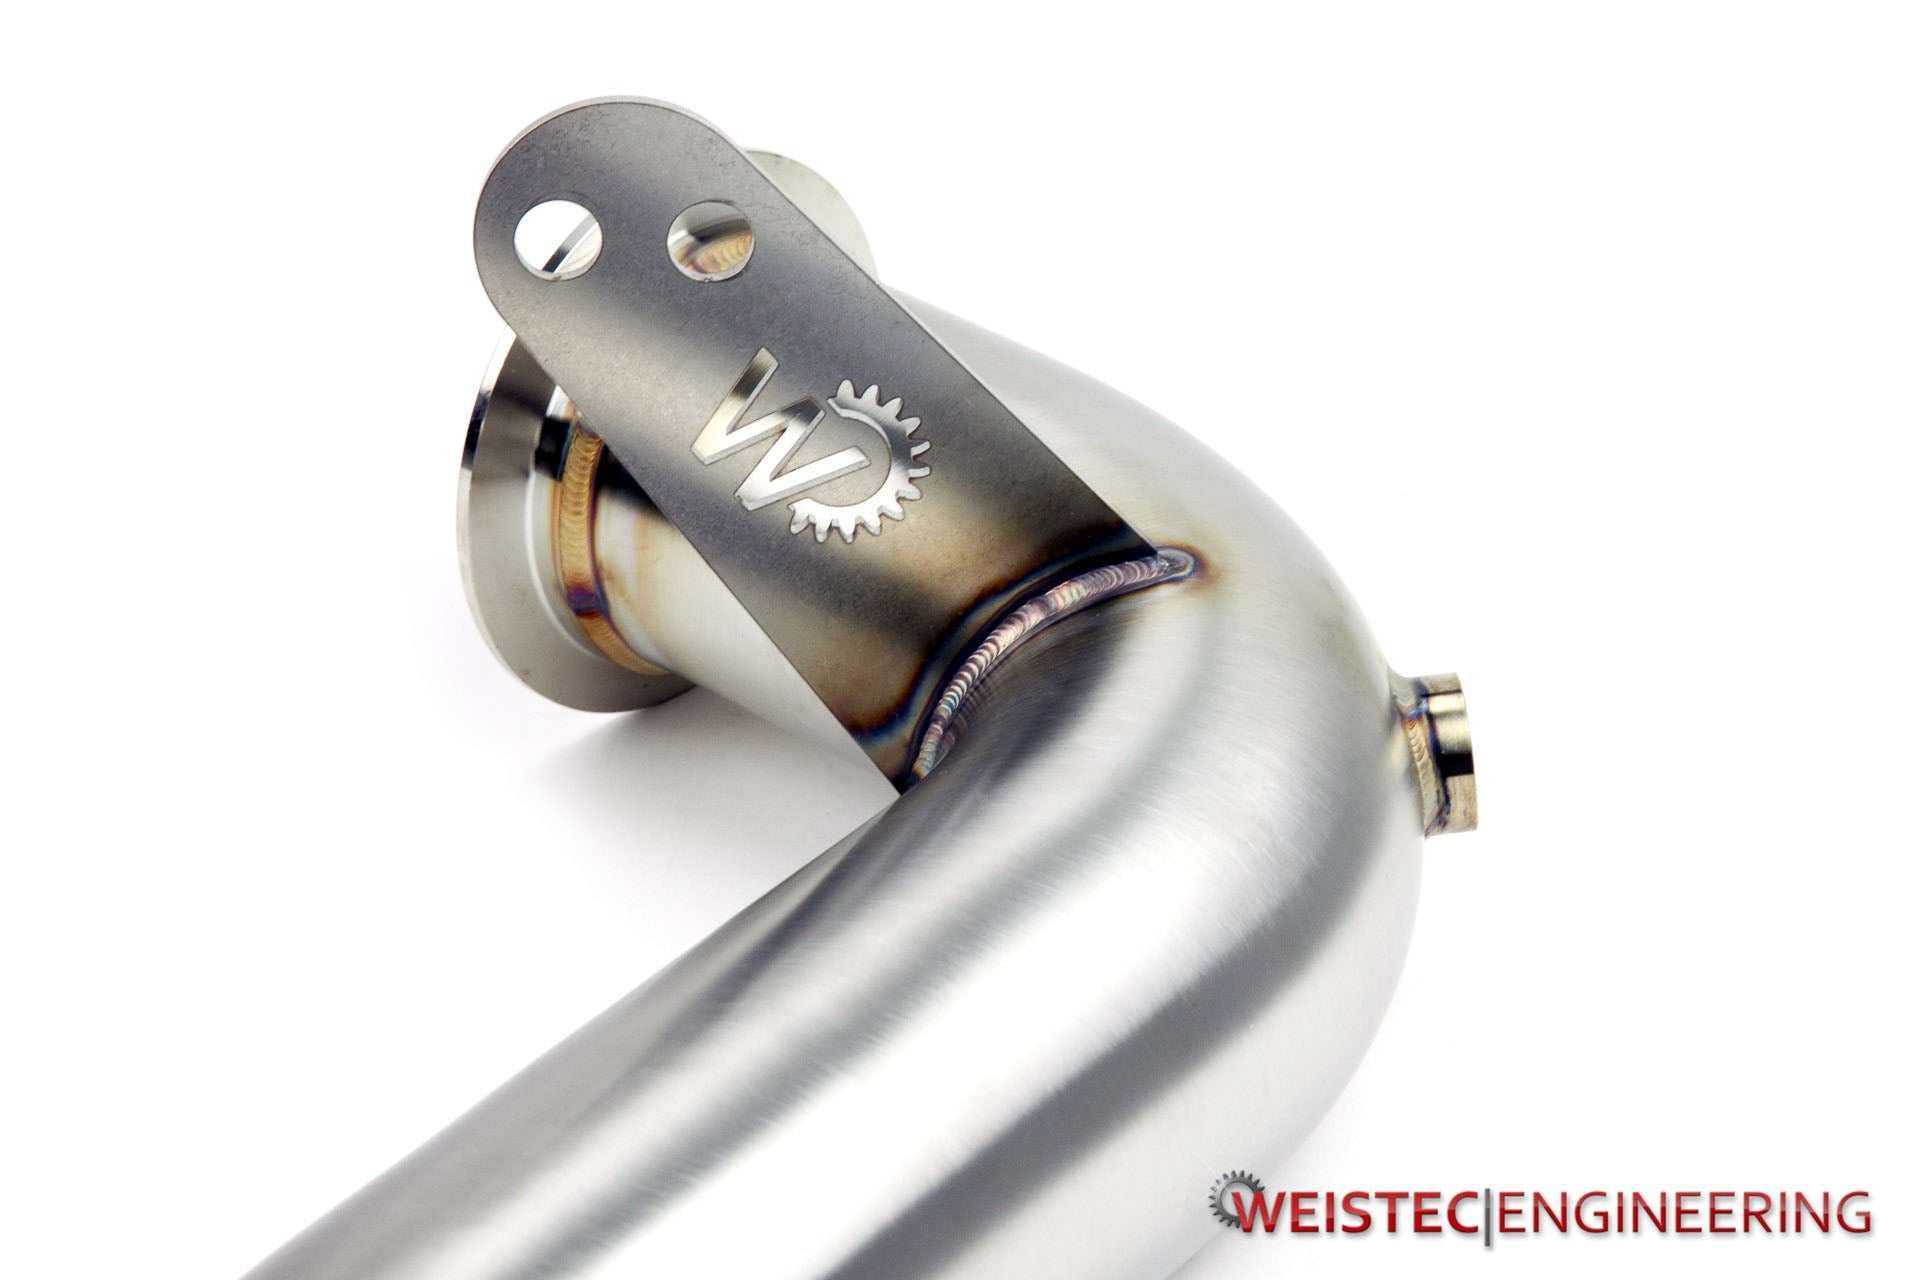 Weistec Engineering Mercedes Benz M274 Downpipe, for Mercedes-Benz C 300